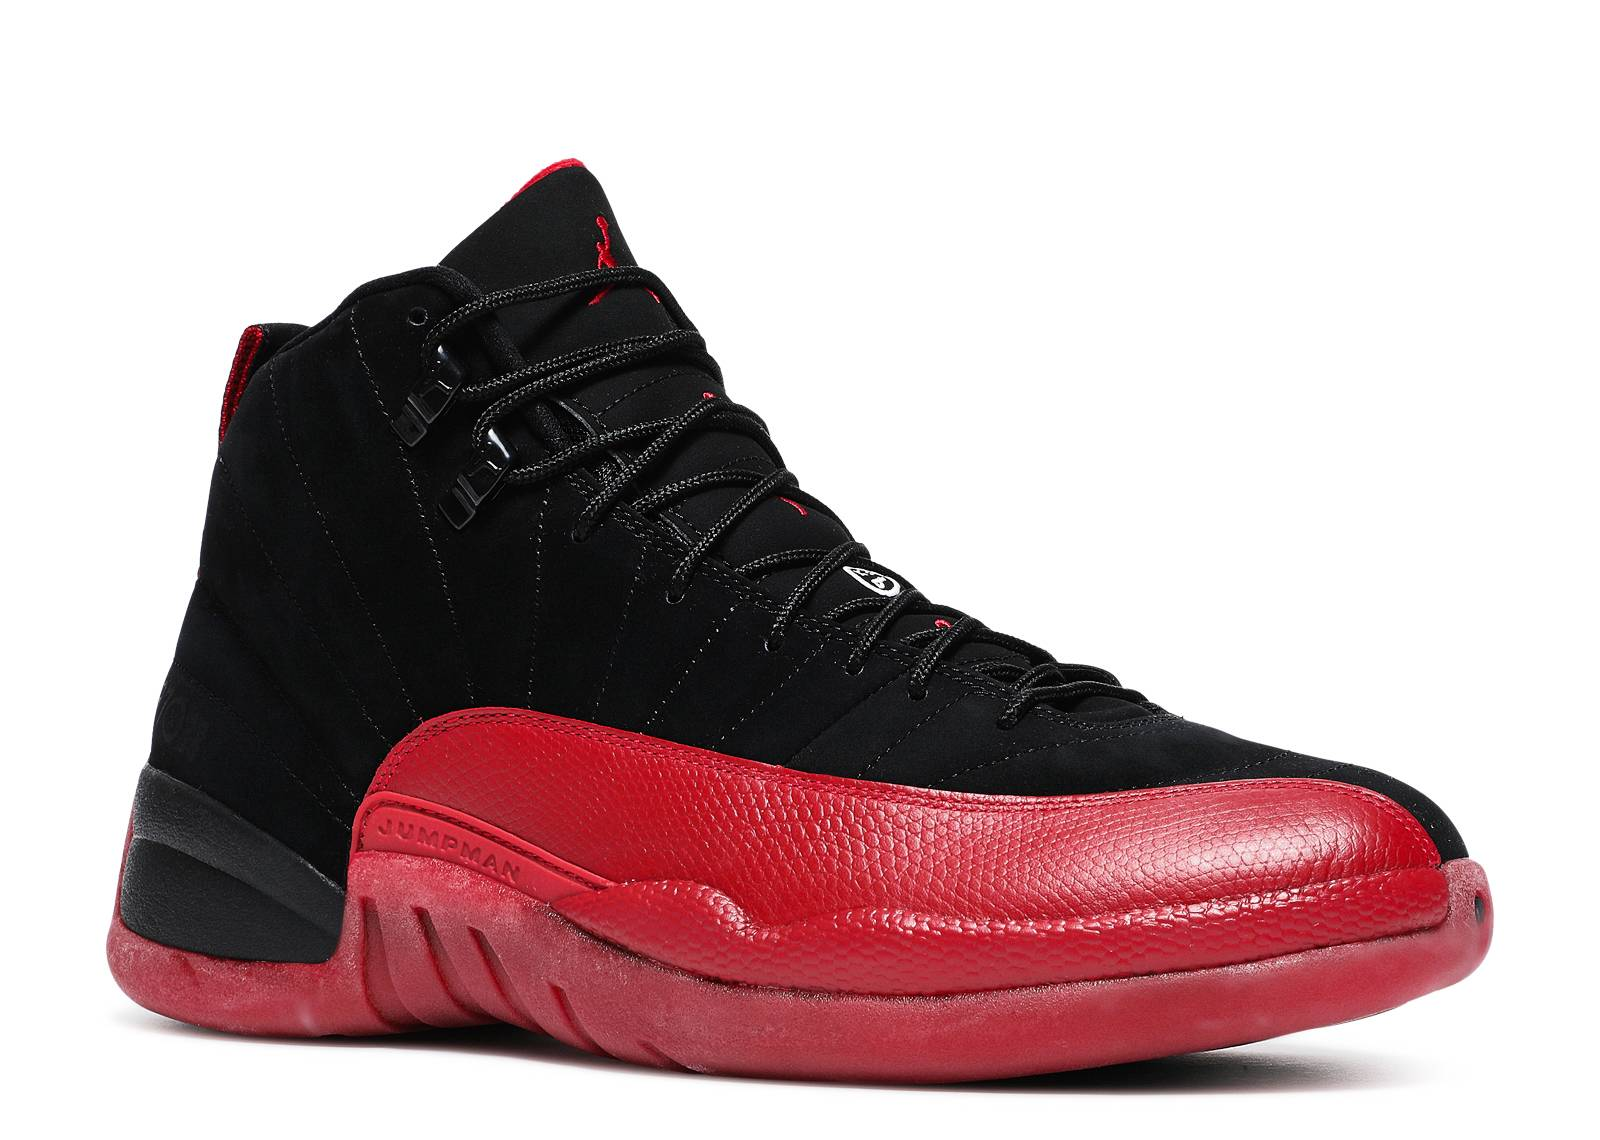 air jordan 12 retro \u0026quot;flu game\u0026quot;